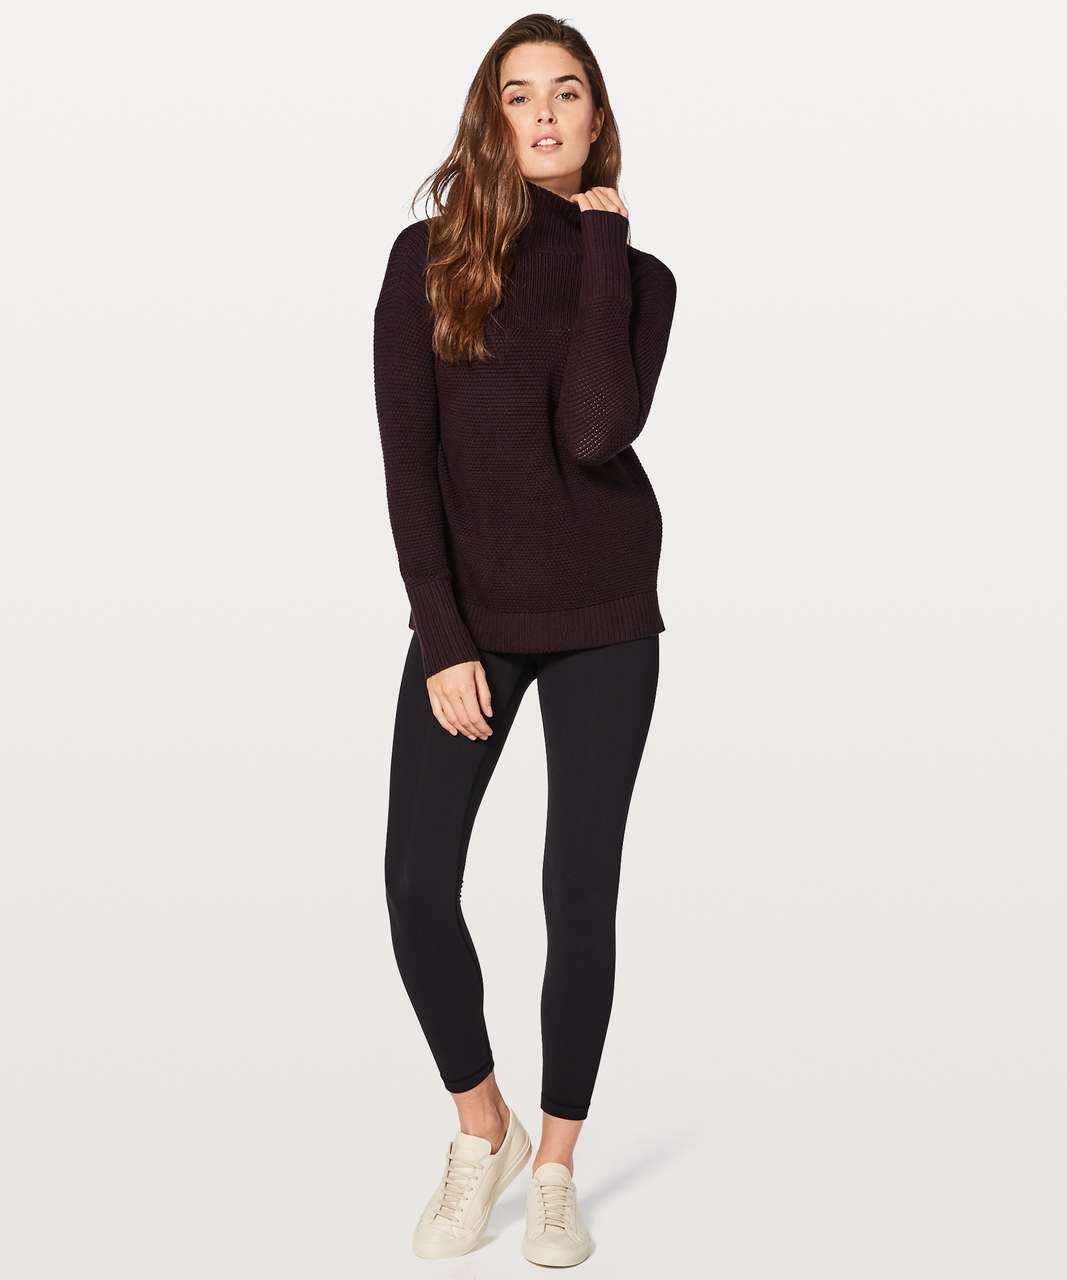 Lululemon Warm & Restore Sweater - Black Cherry